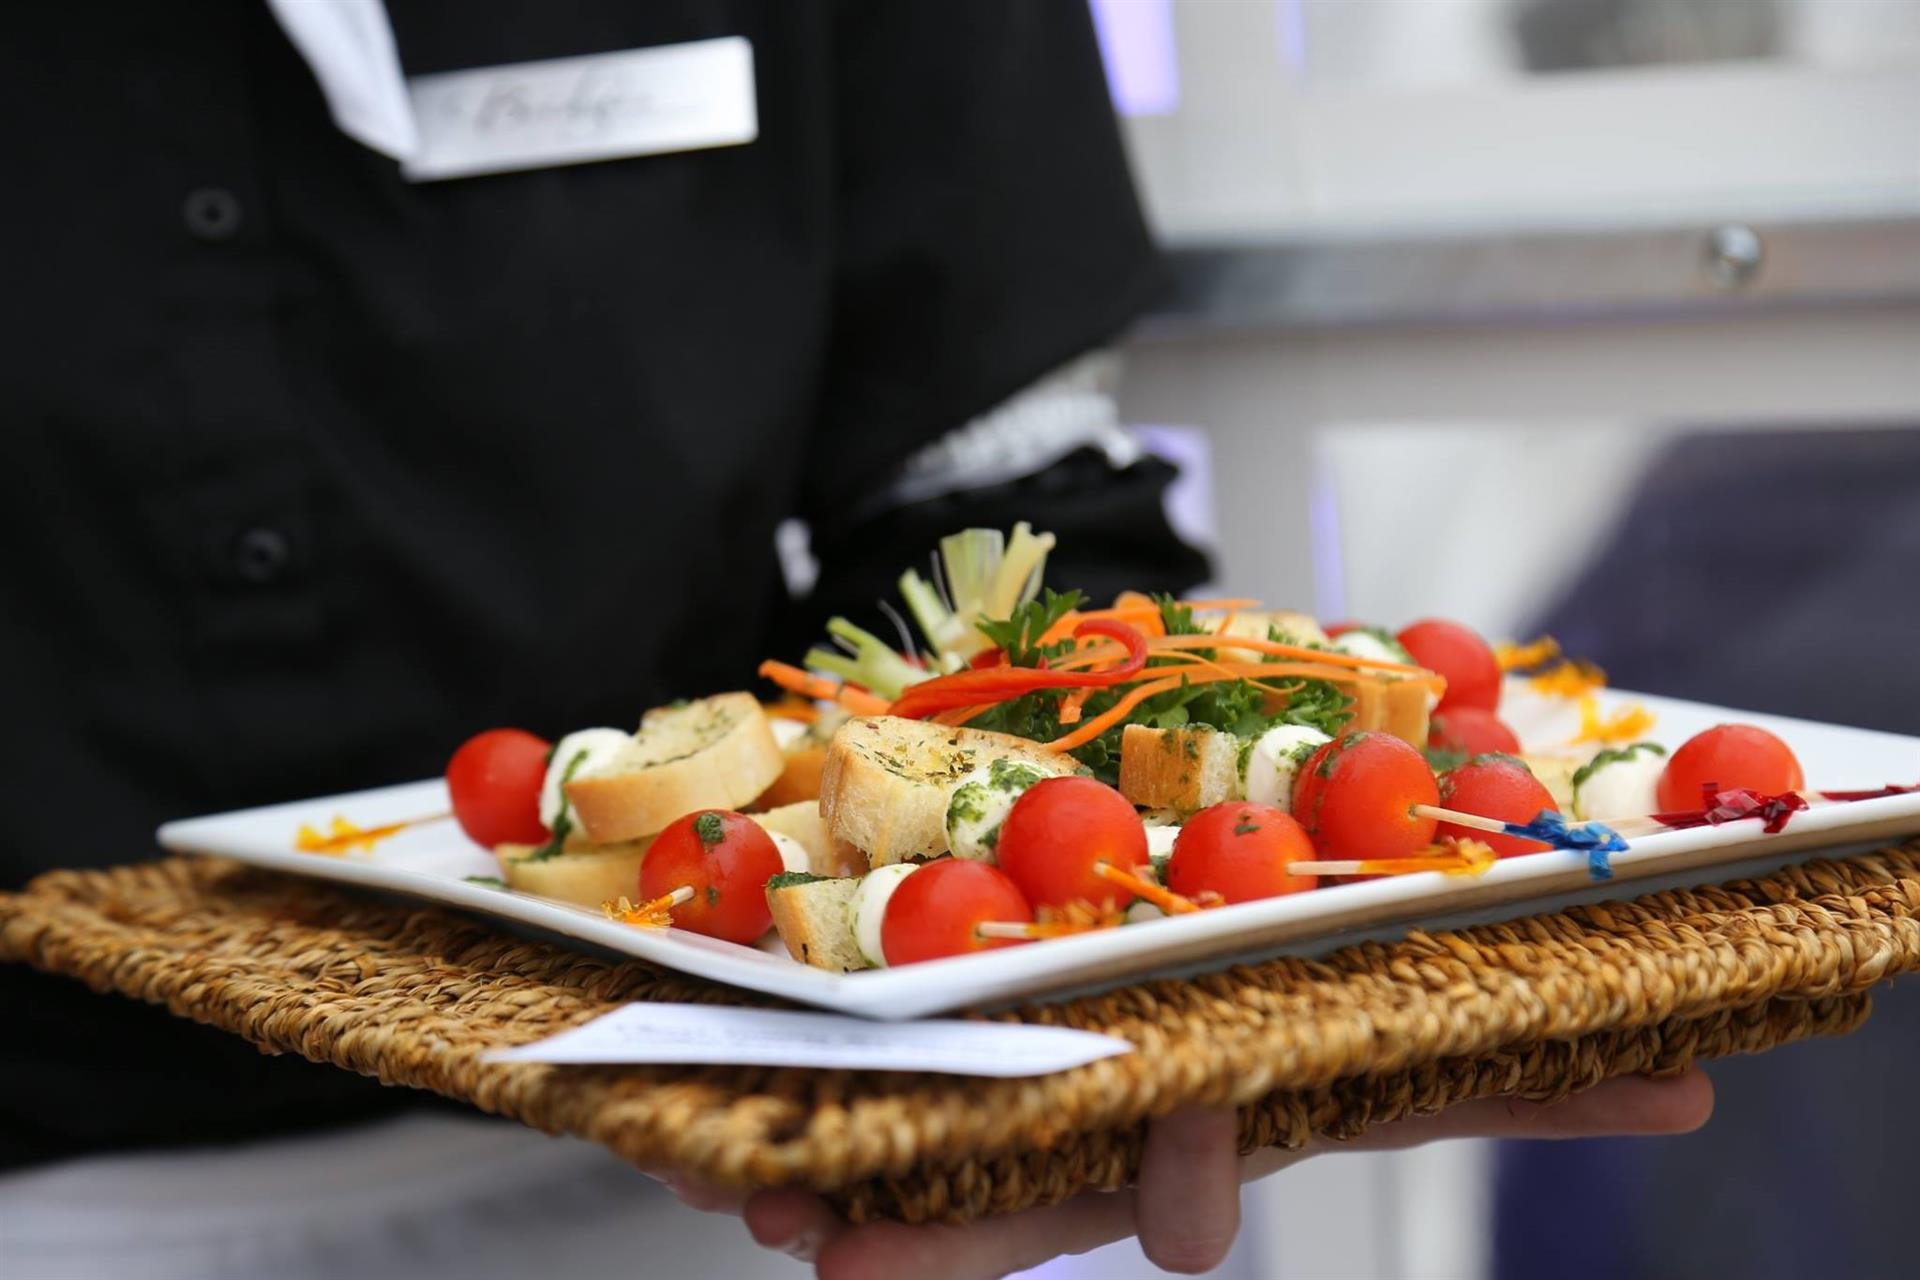 Server holding a tray of skewers with toasted bread